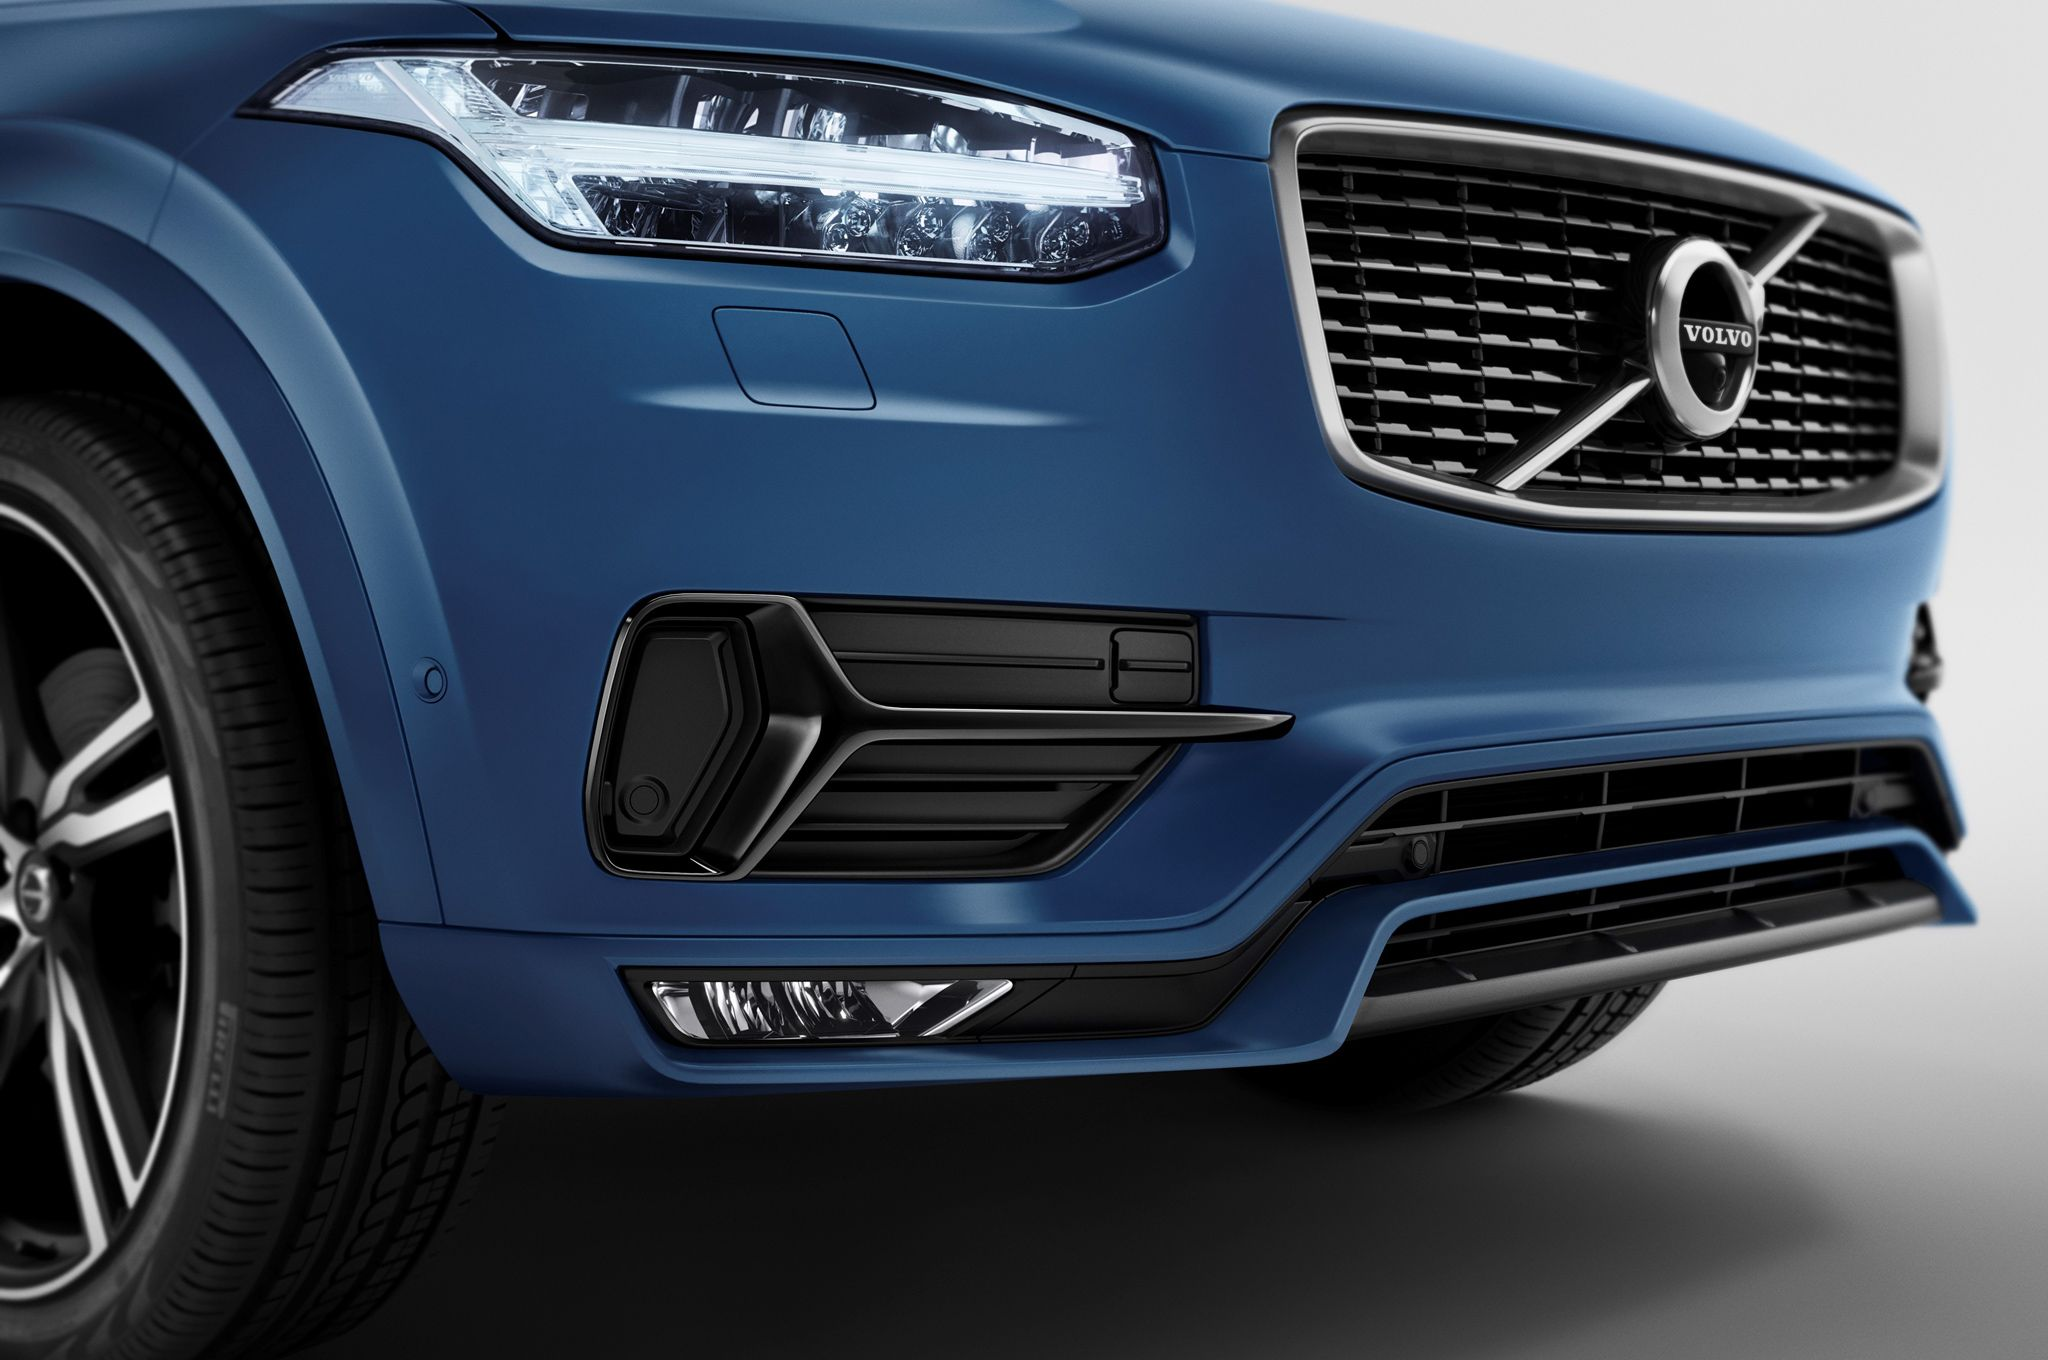 2016 volvo xc90 d5 active review http carspiner com 2016